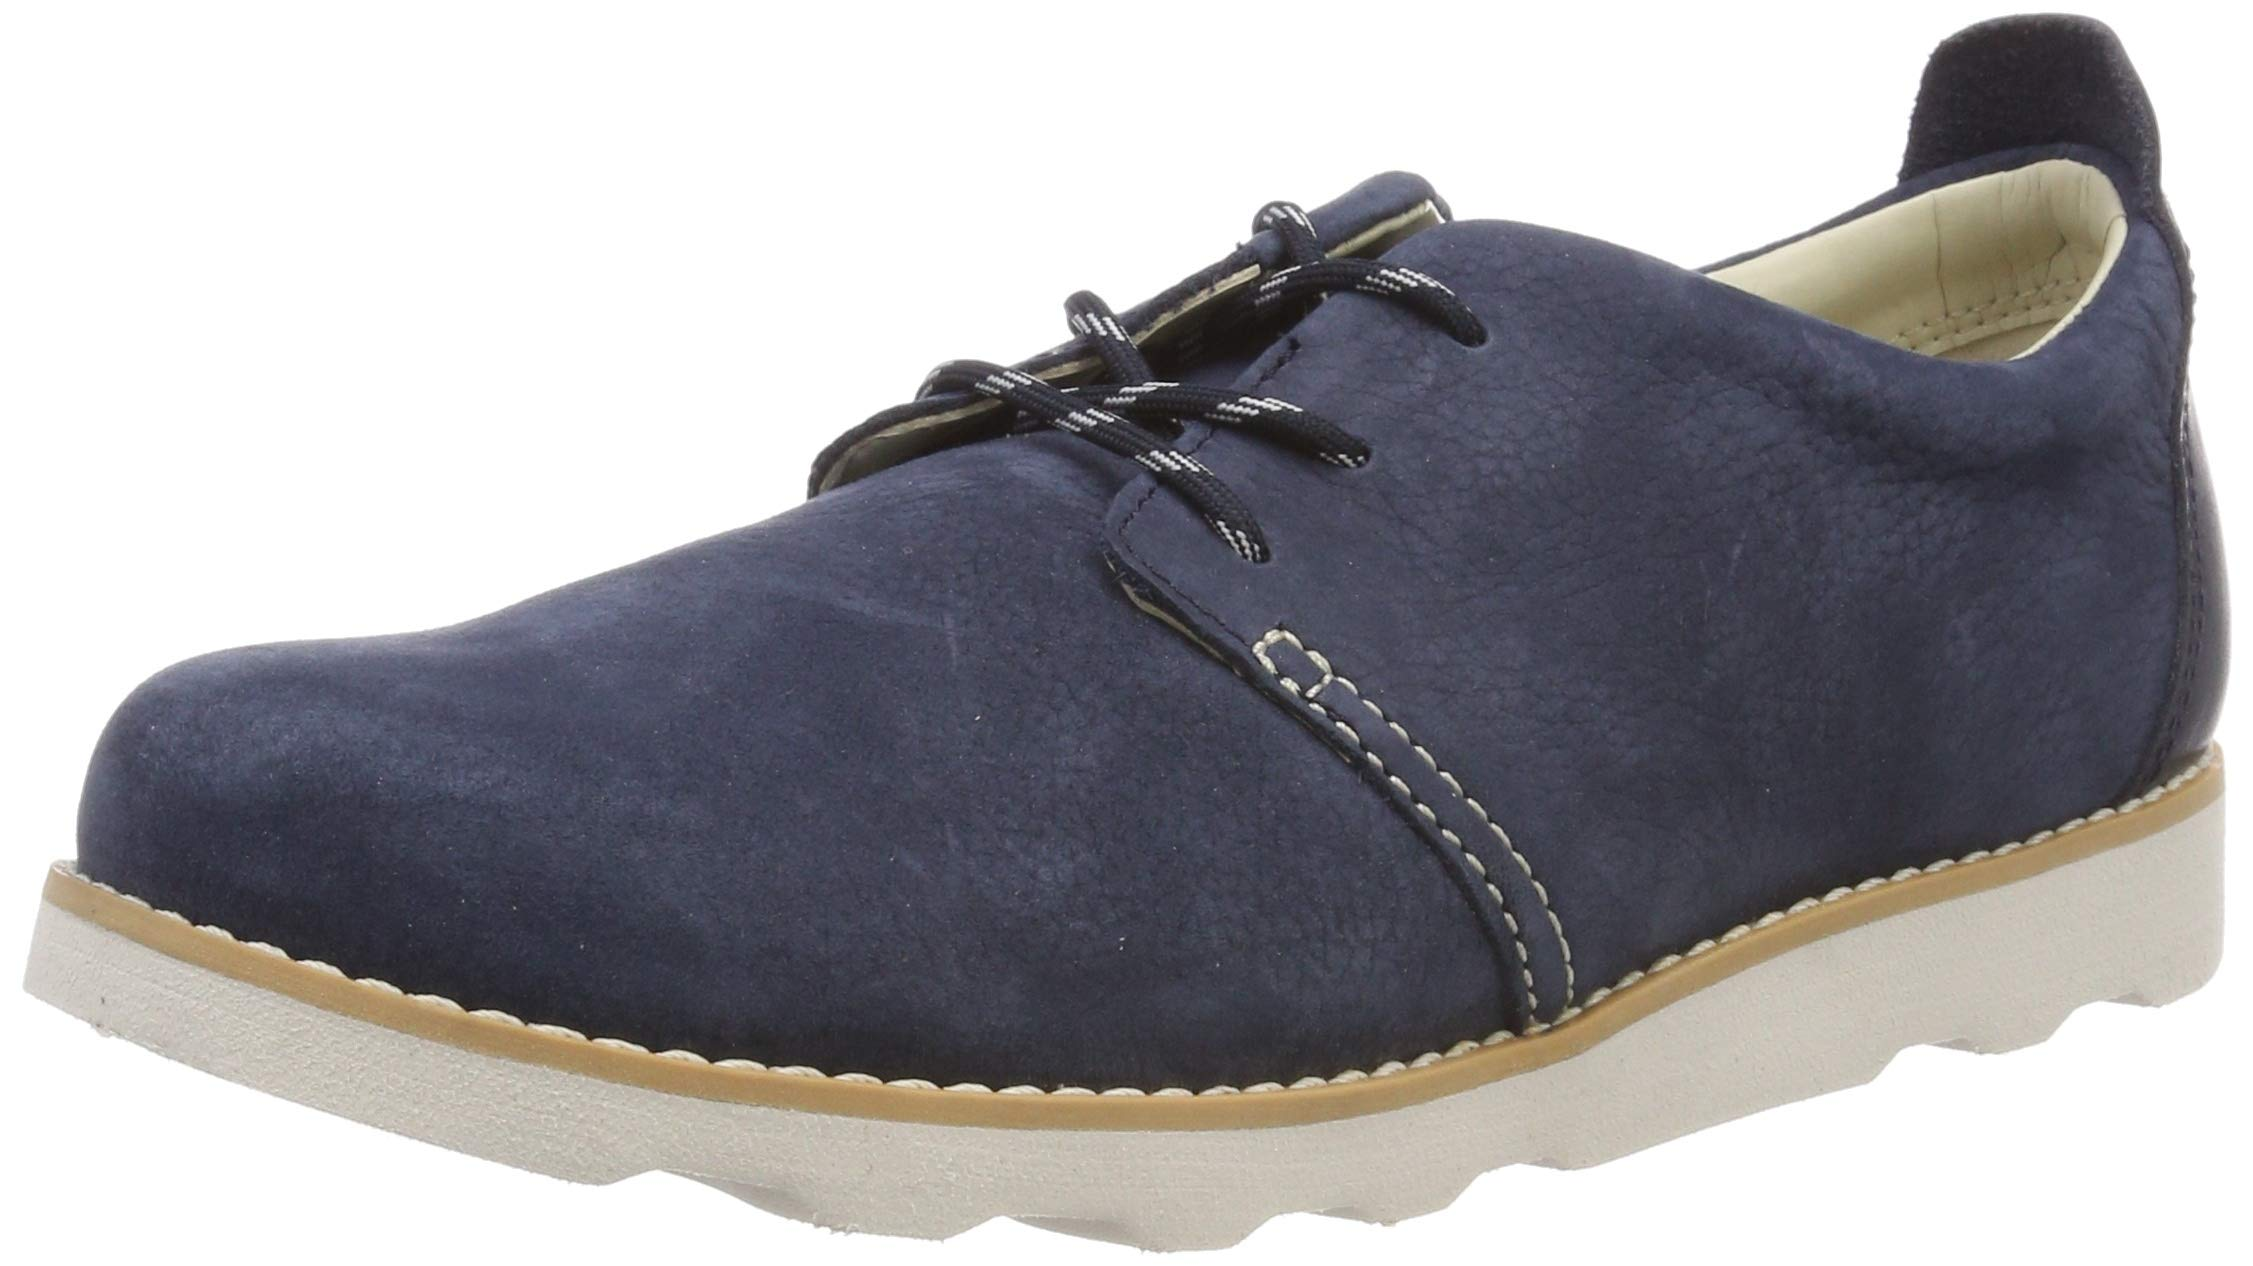 CLARKS Boys' Crown Park K Derbys, Blue (Navy Leather-), 2.5 UK